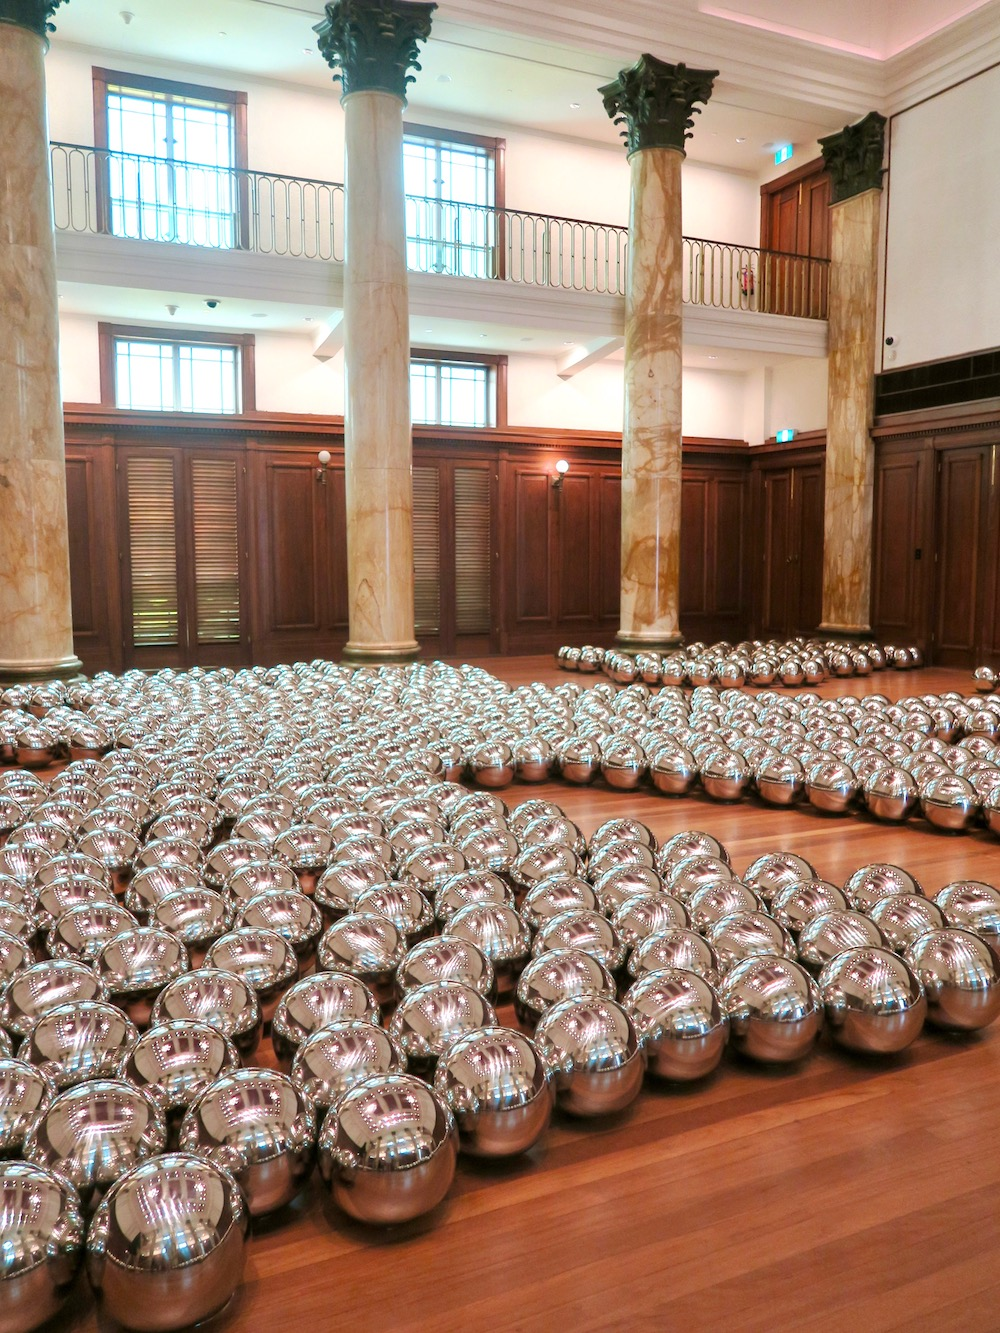 Silver balls lying on the floor in a class room |curlytraveller.com